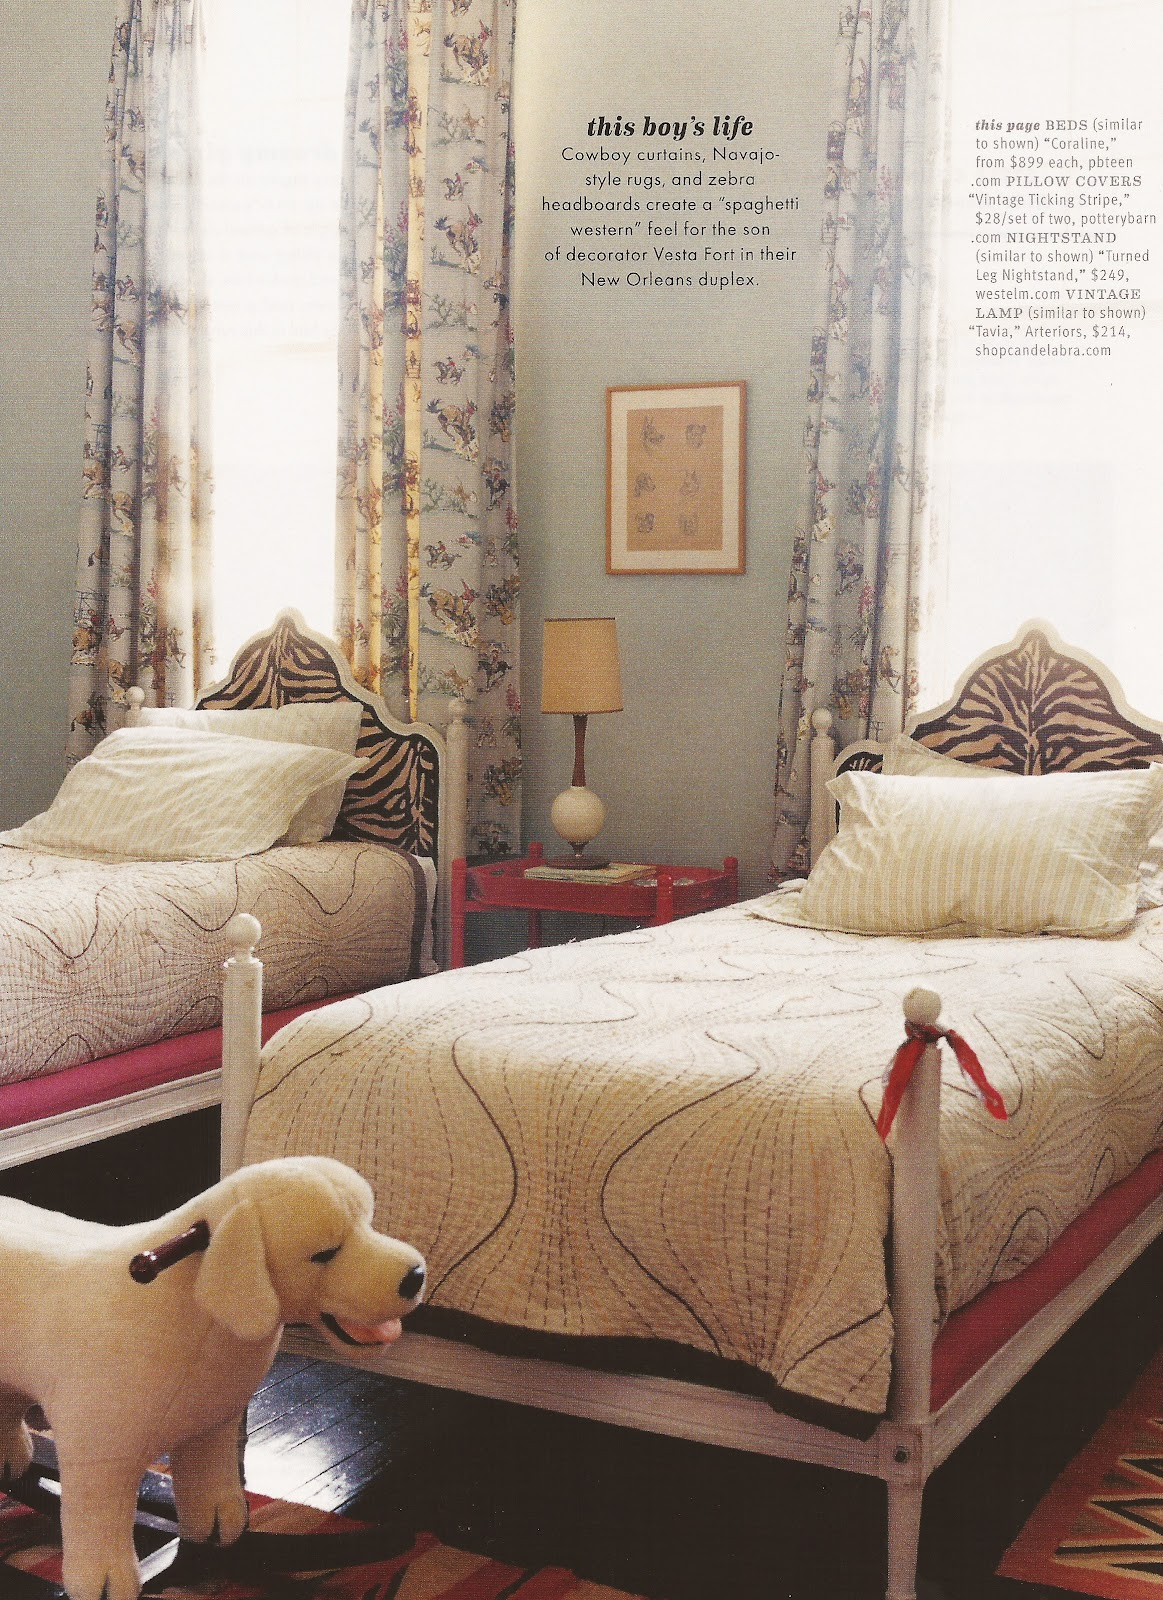 Spectacular Double the pleasure double the fun What great headboard fabric and a Golden Retriever rocker I um in love